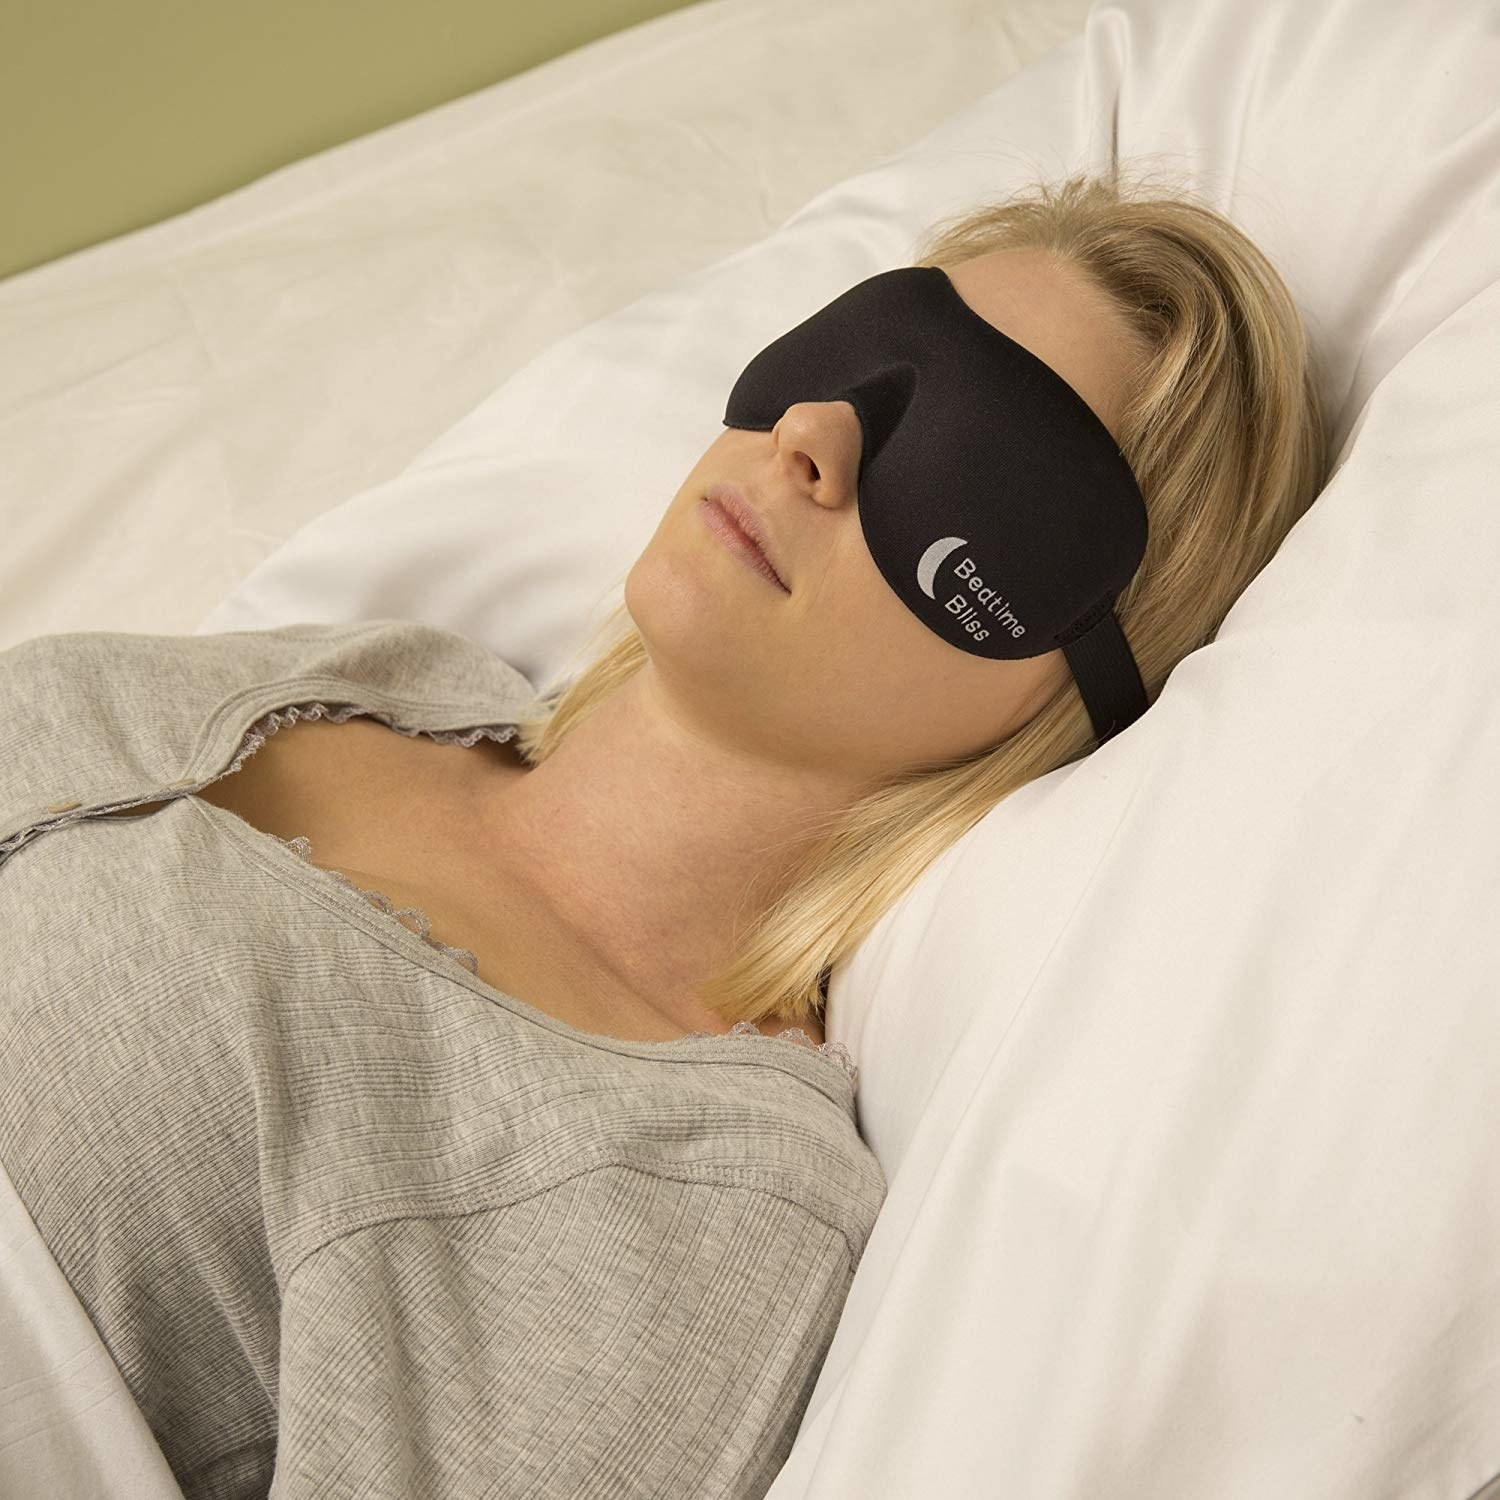 Model wearing the eye mask while in bed